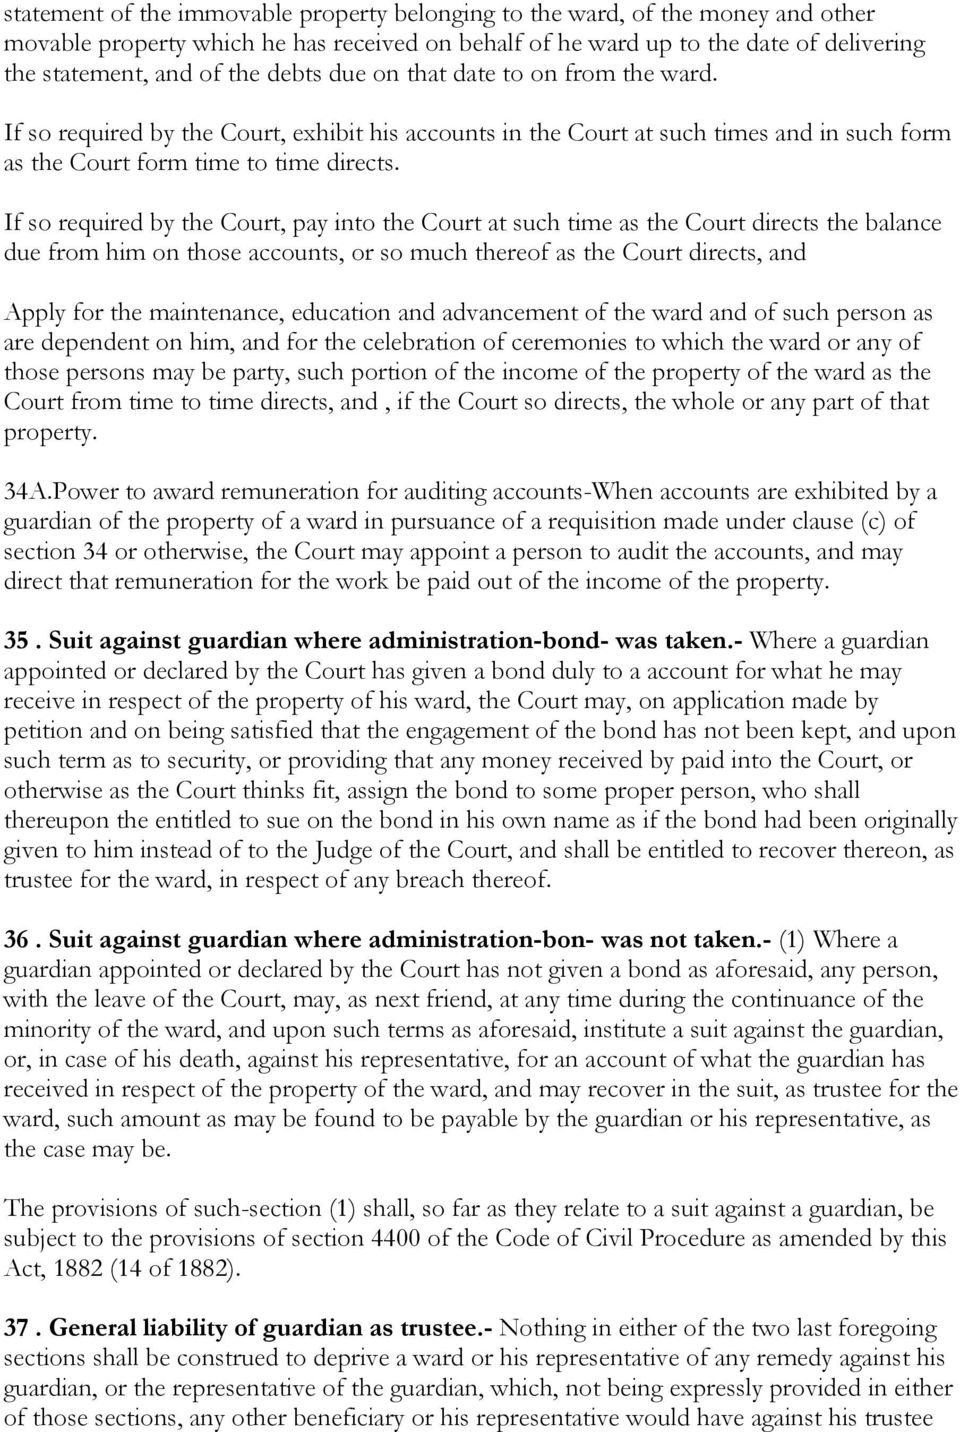 If so required by the Court, pay into the Court at such time as the Court directs the balance due from him on those accounts, or so much thereof as the Court directs, and Apply for the maintenance,